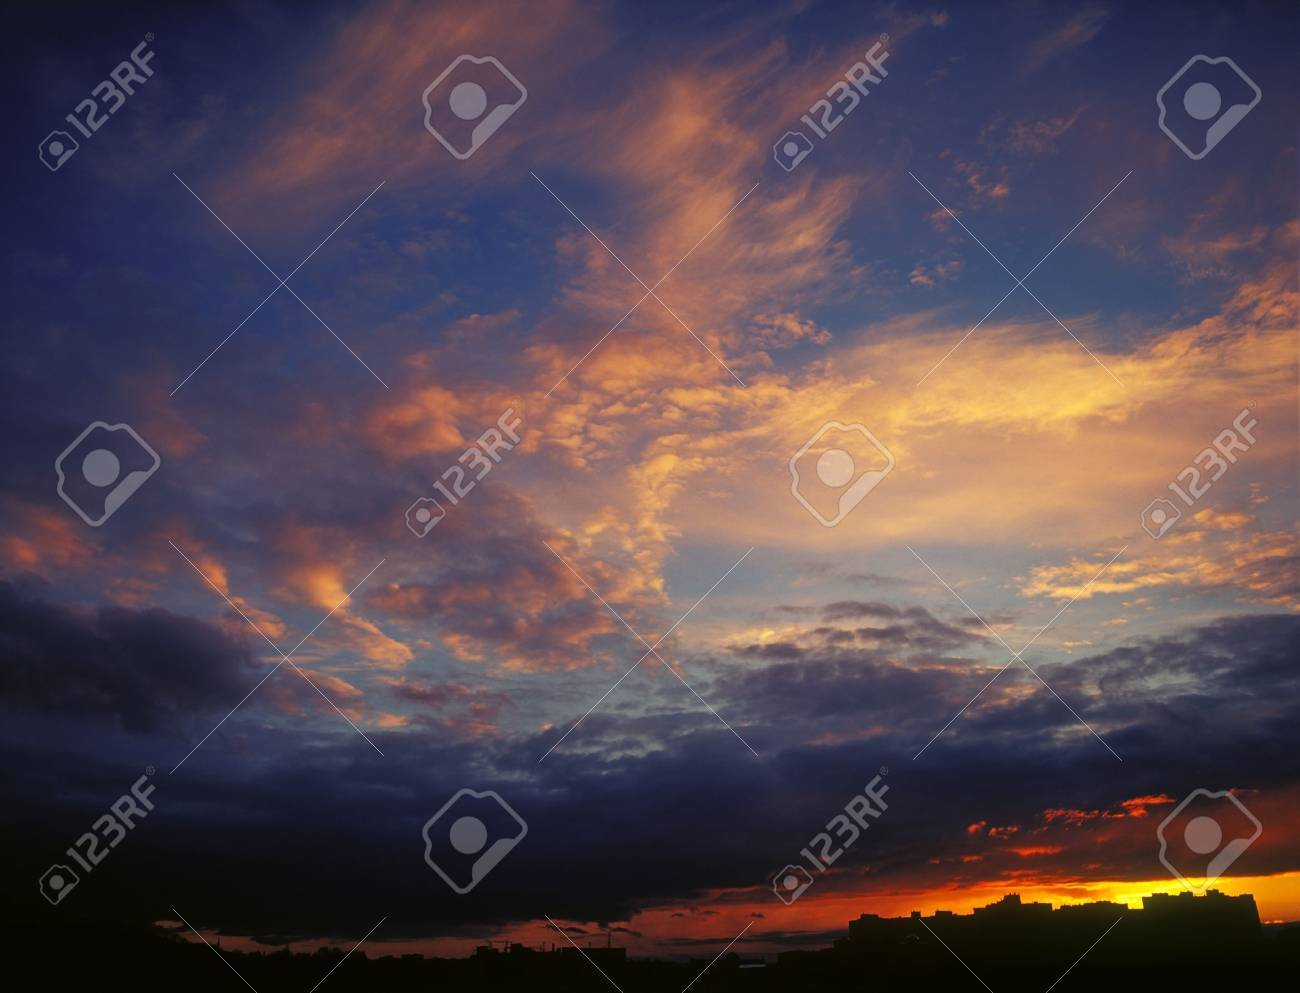 The magnificent sky and clouds in last beams of the sun. - 15654597